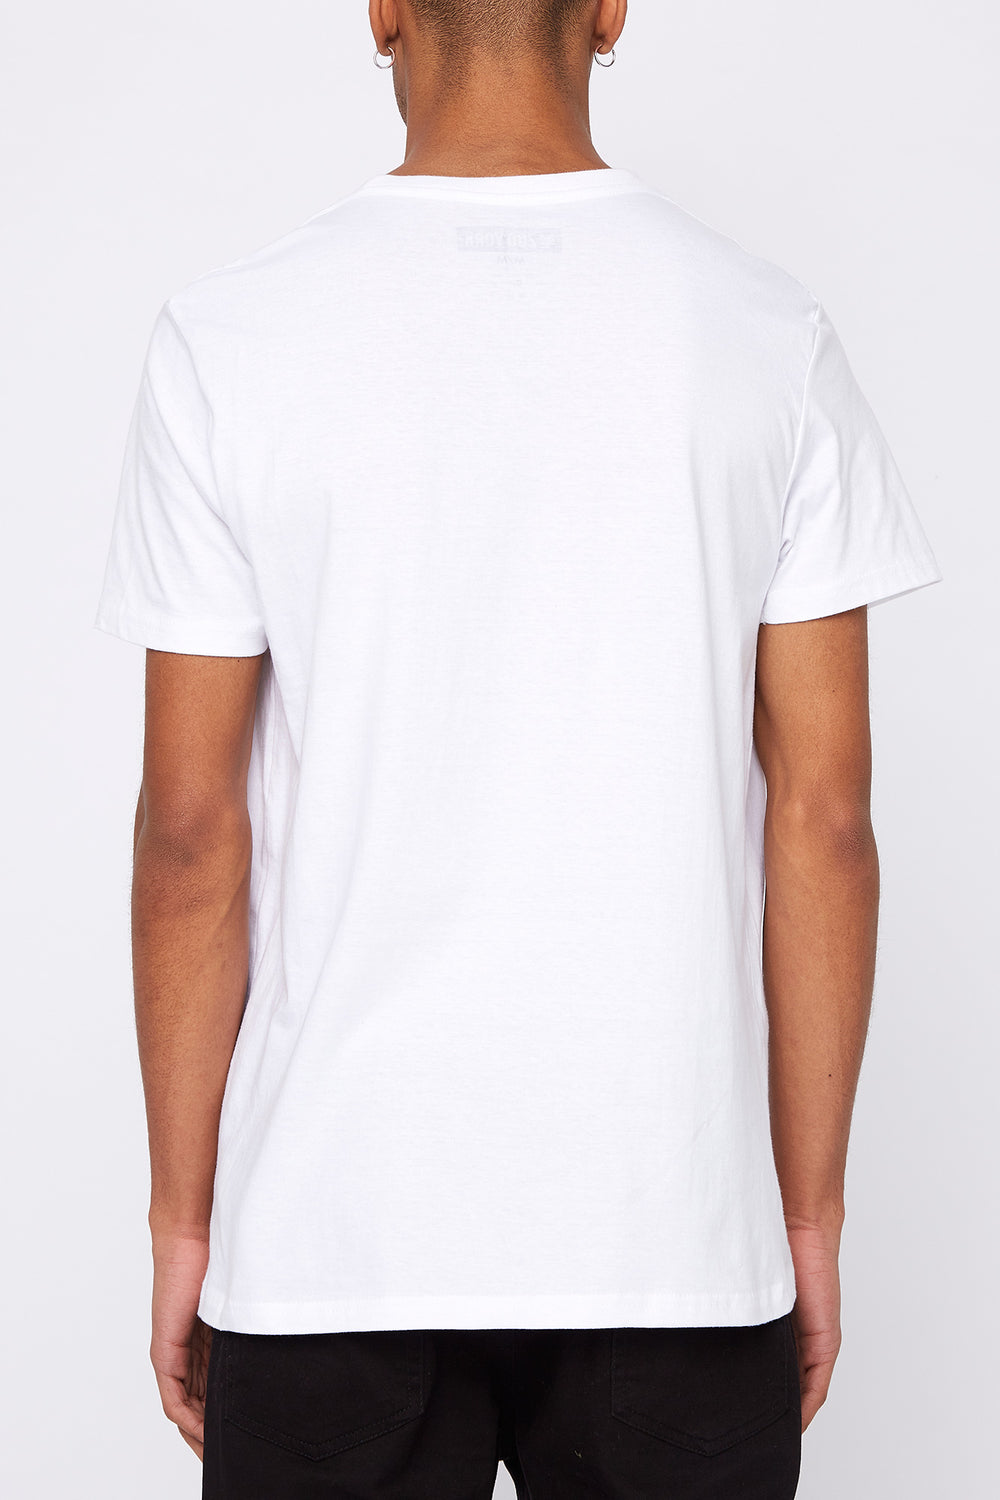 Zoo York Mens Patch Logo T-Shirt White